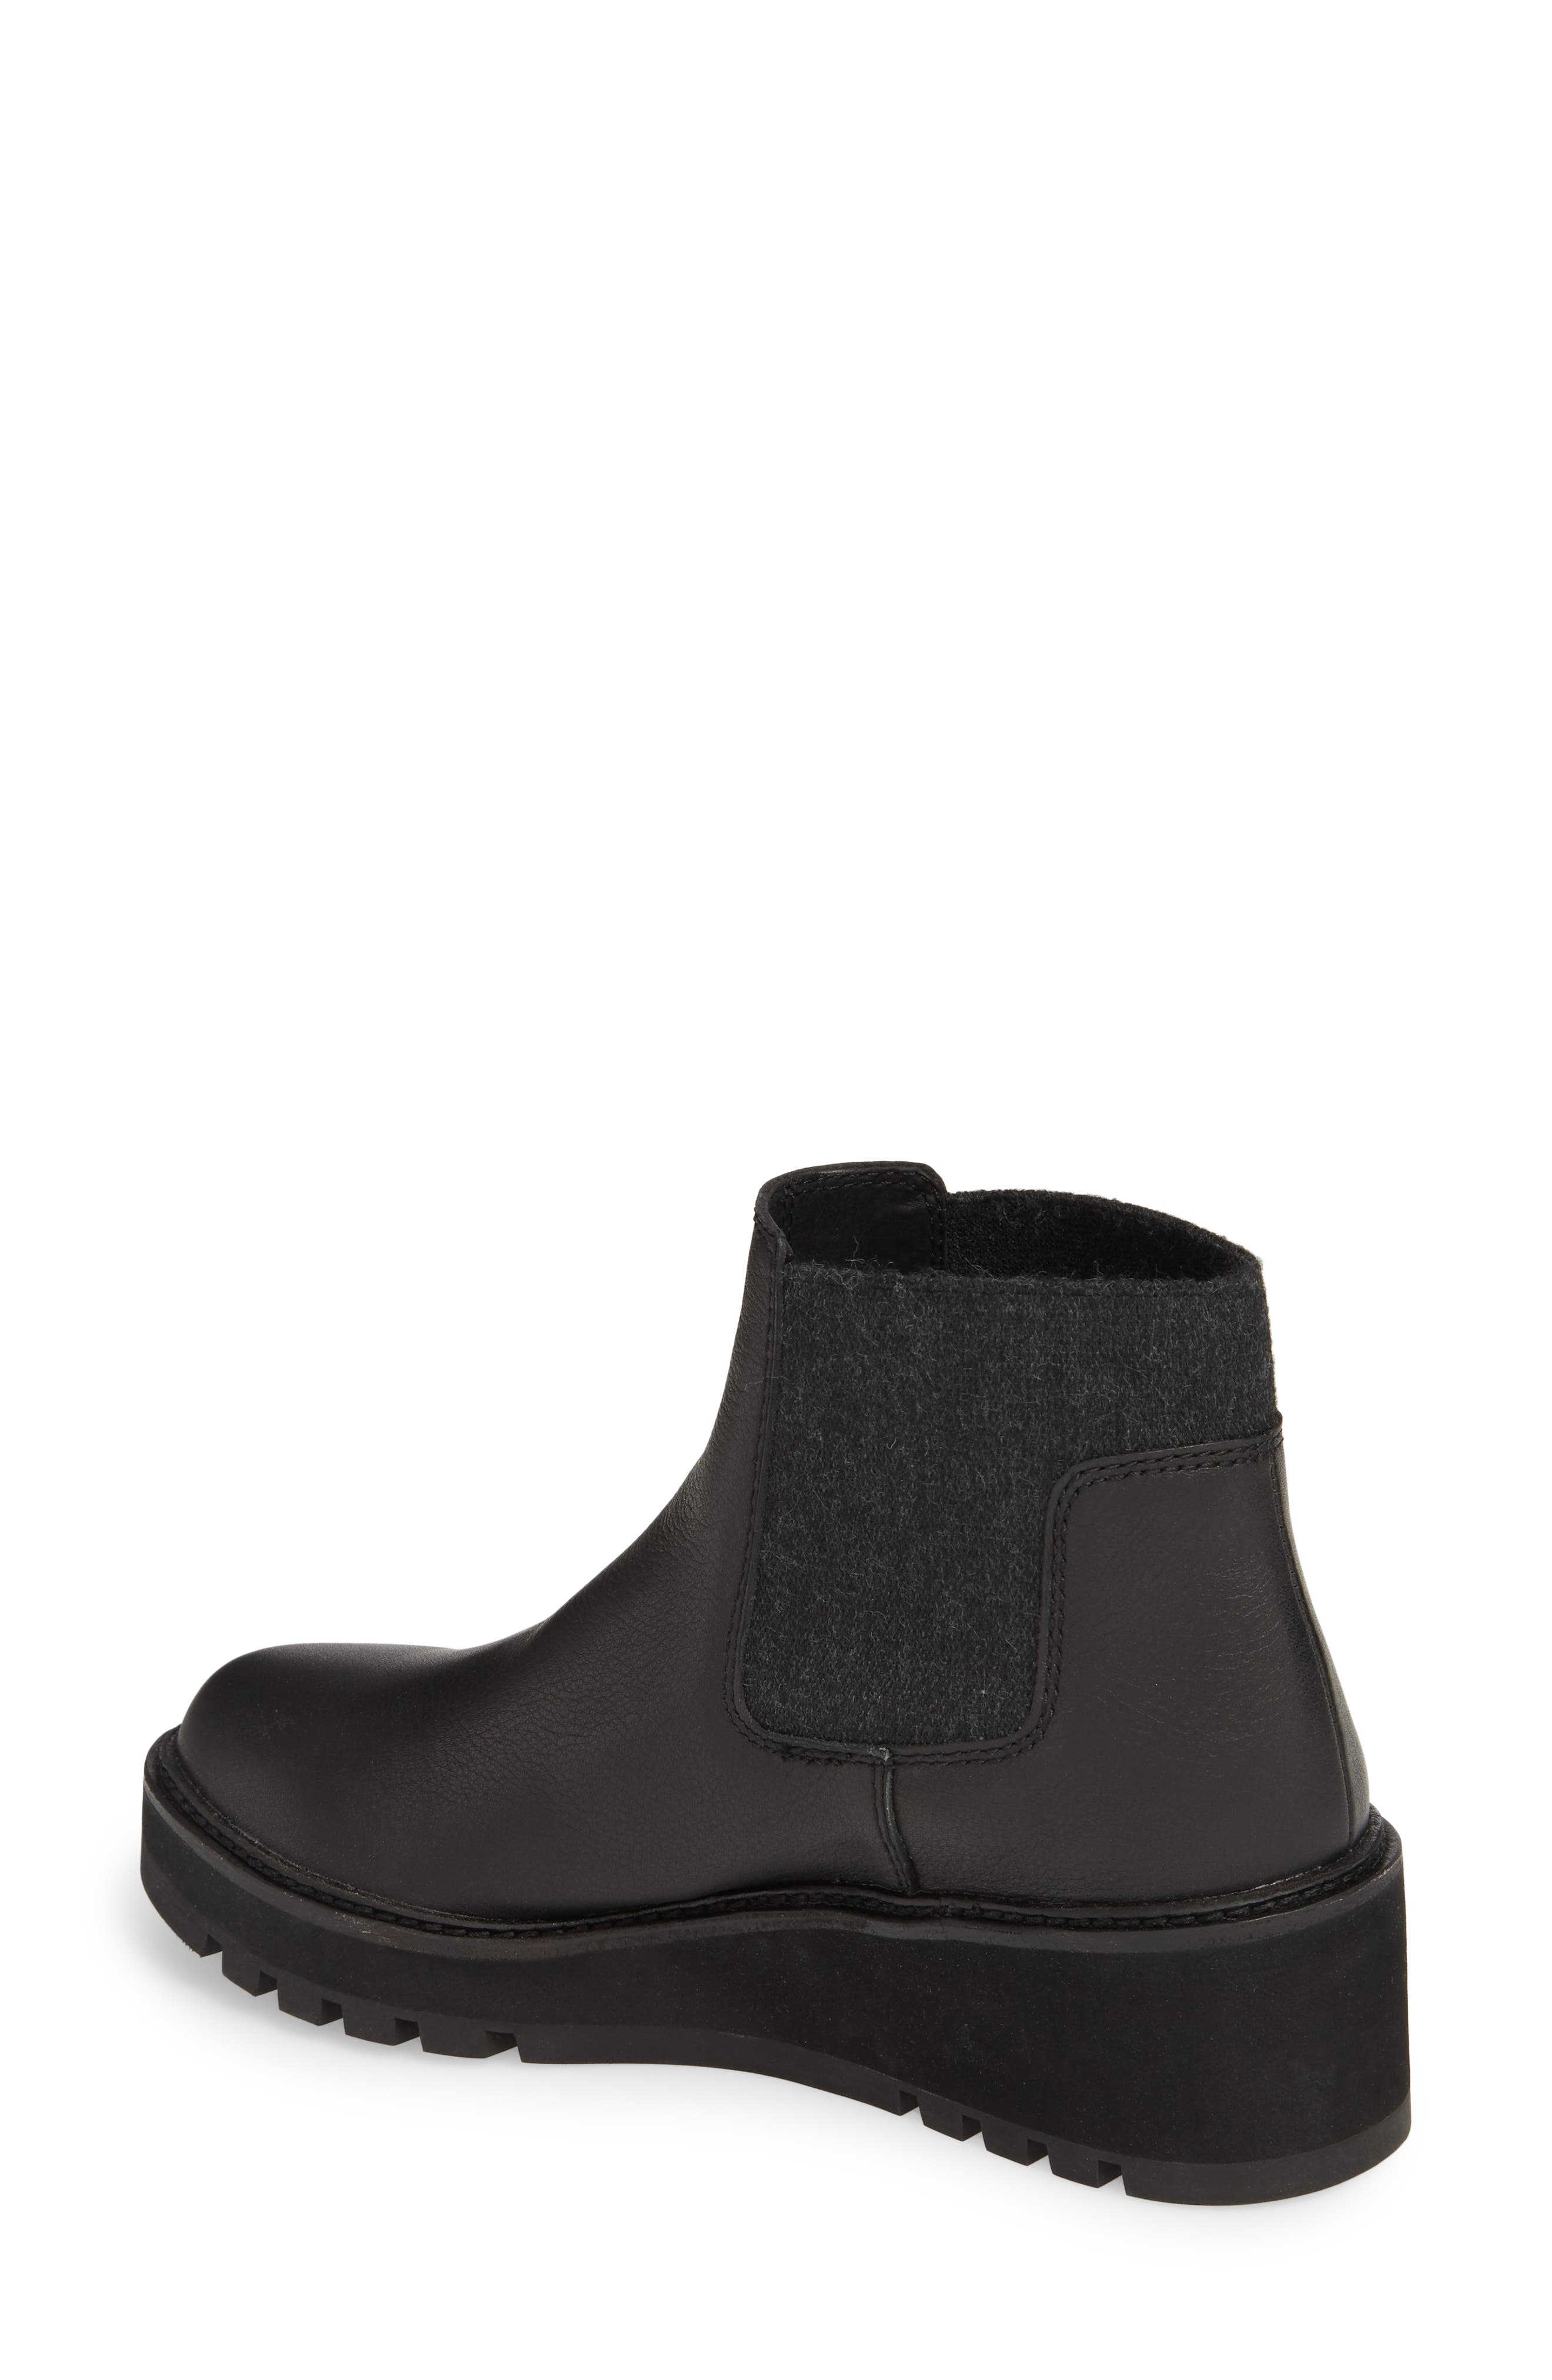 Wedge Chelsea Bootie,                             Alternate thumbnail 2, color,                             Black Washed Leather